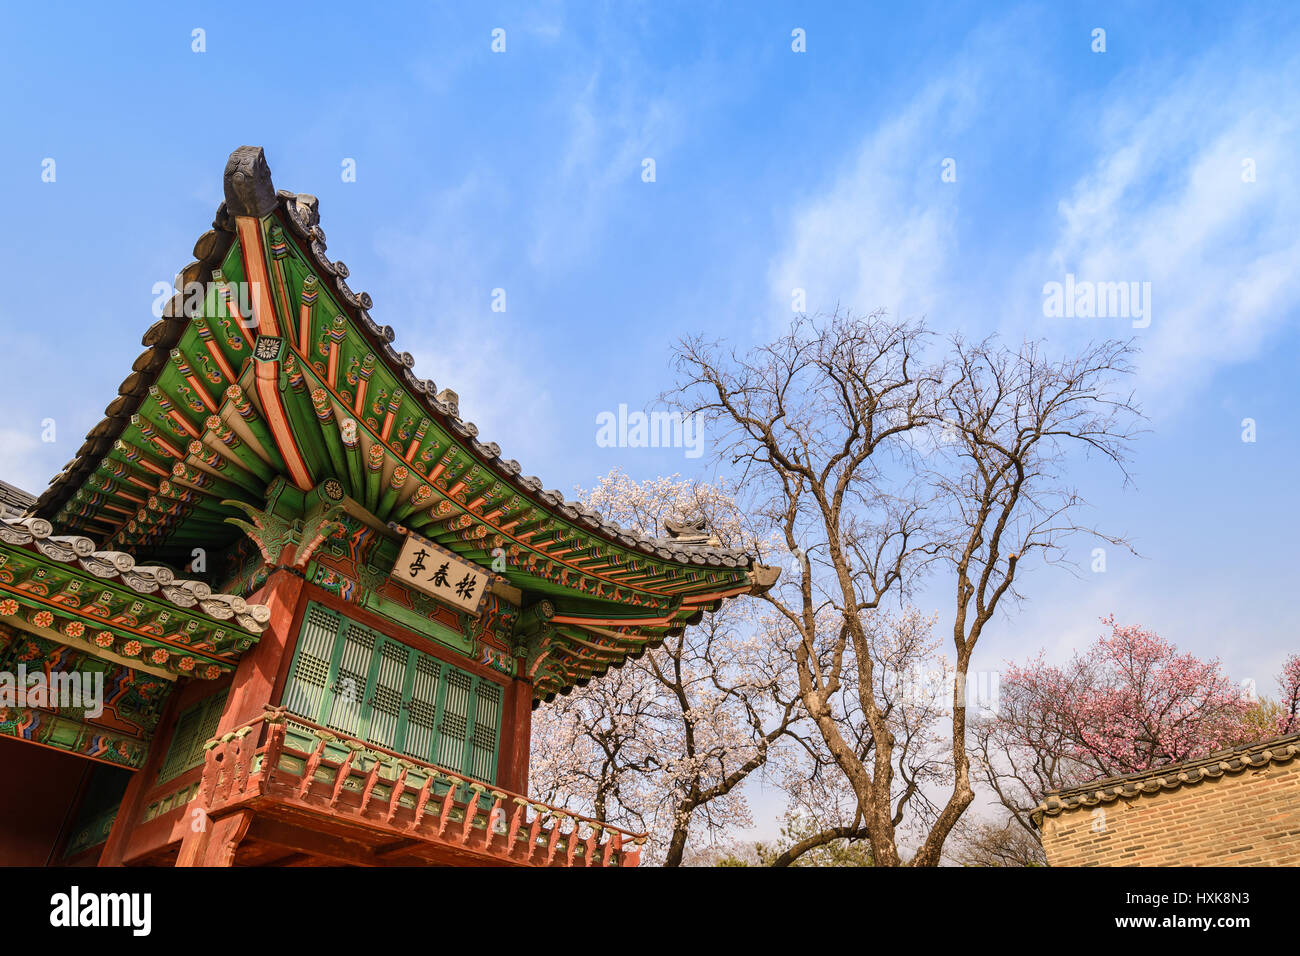 Spring Cherry Blossom at Changdeokgung Palace, Seoul, South Korea Stock Photo